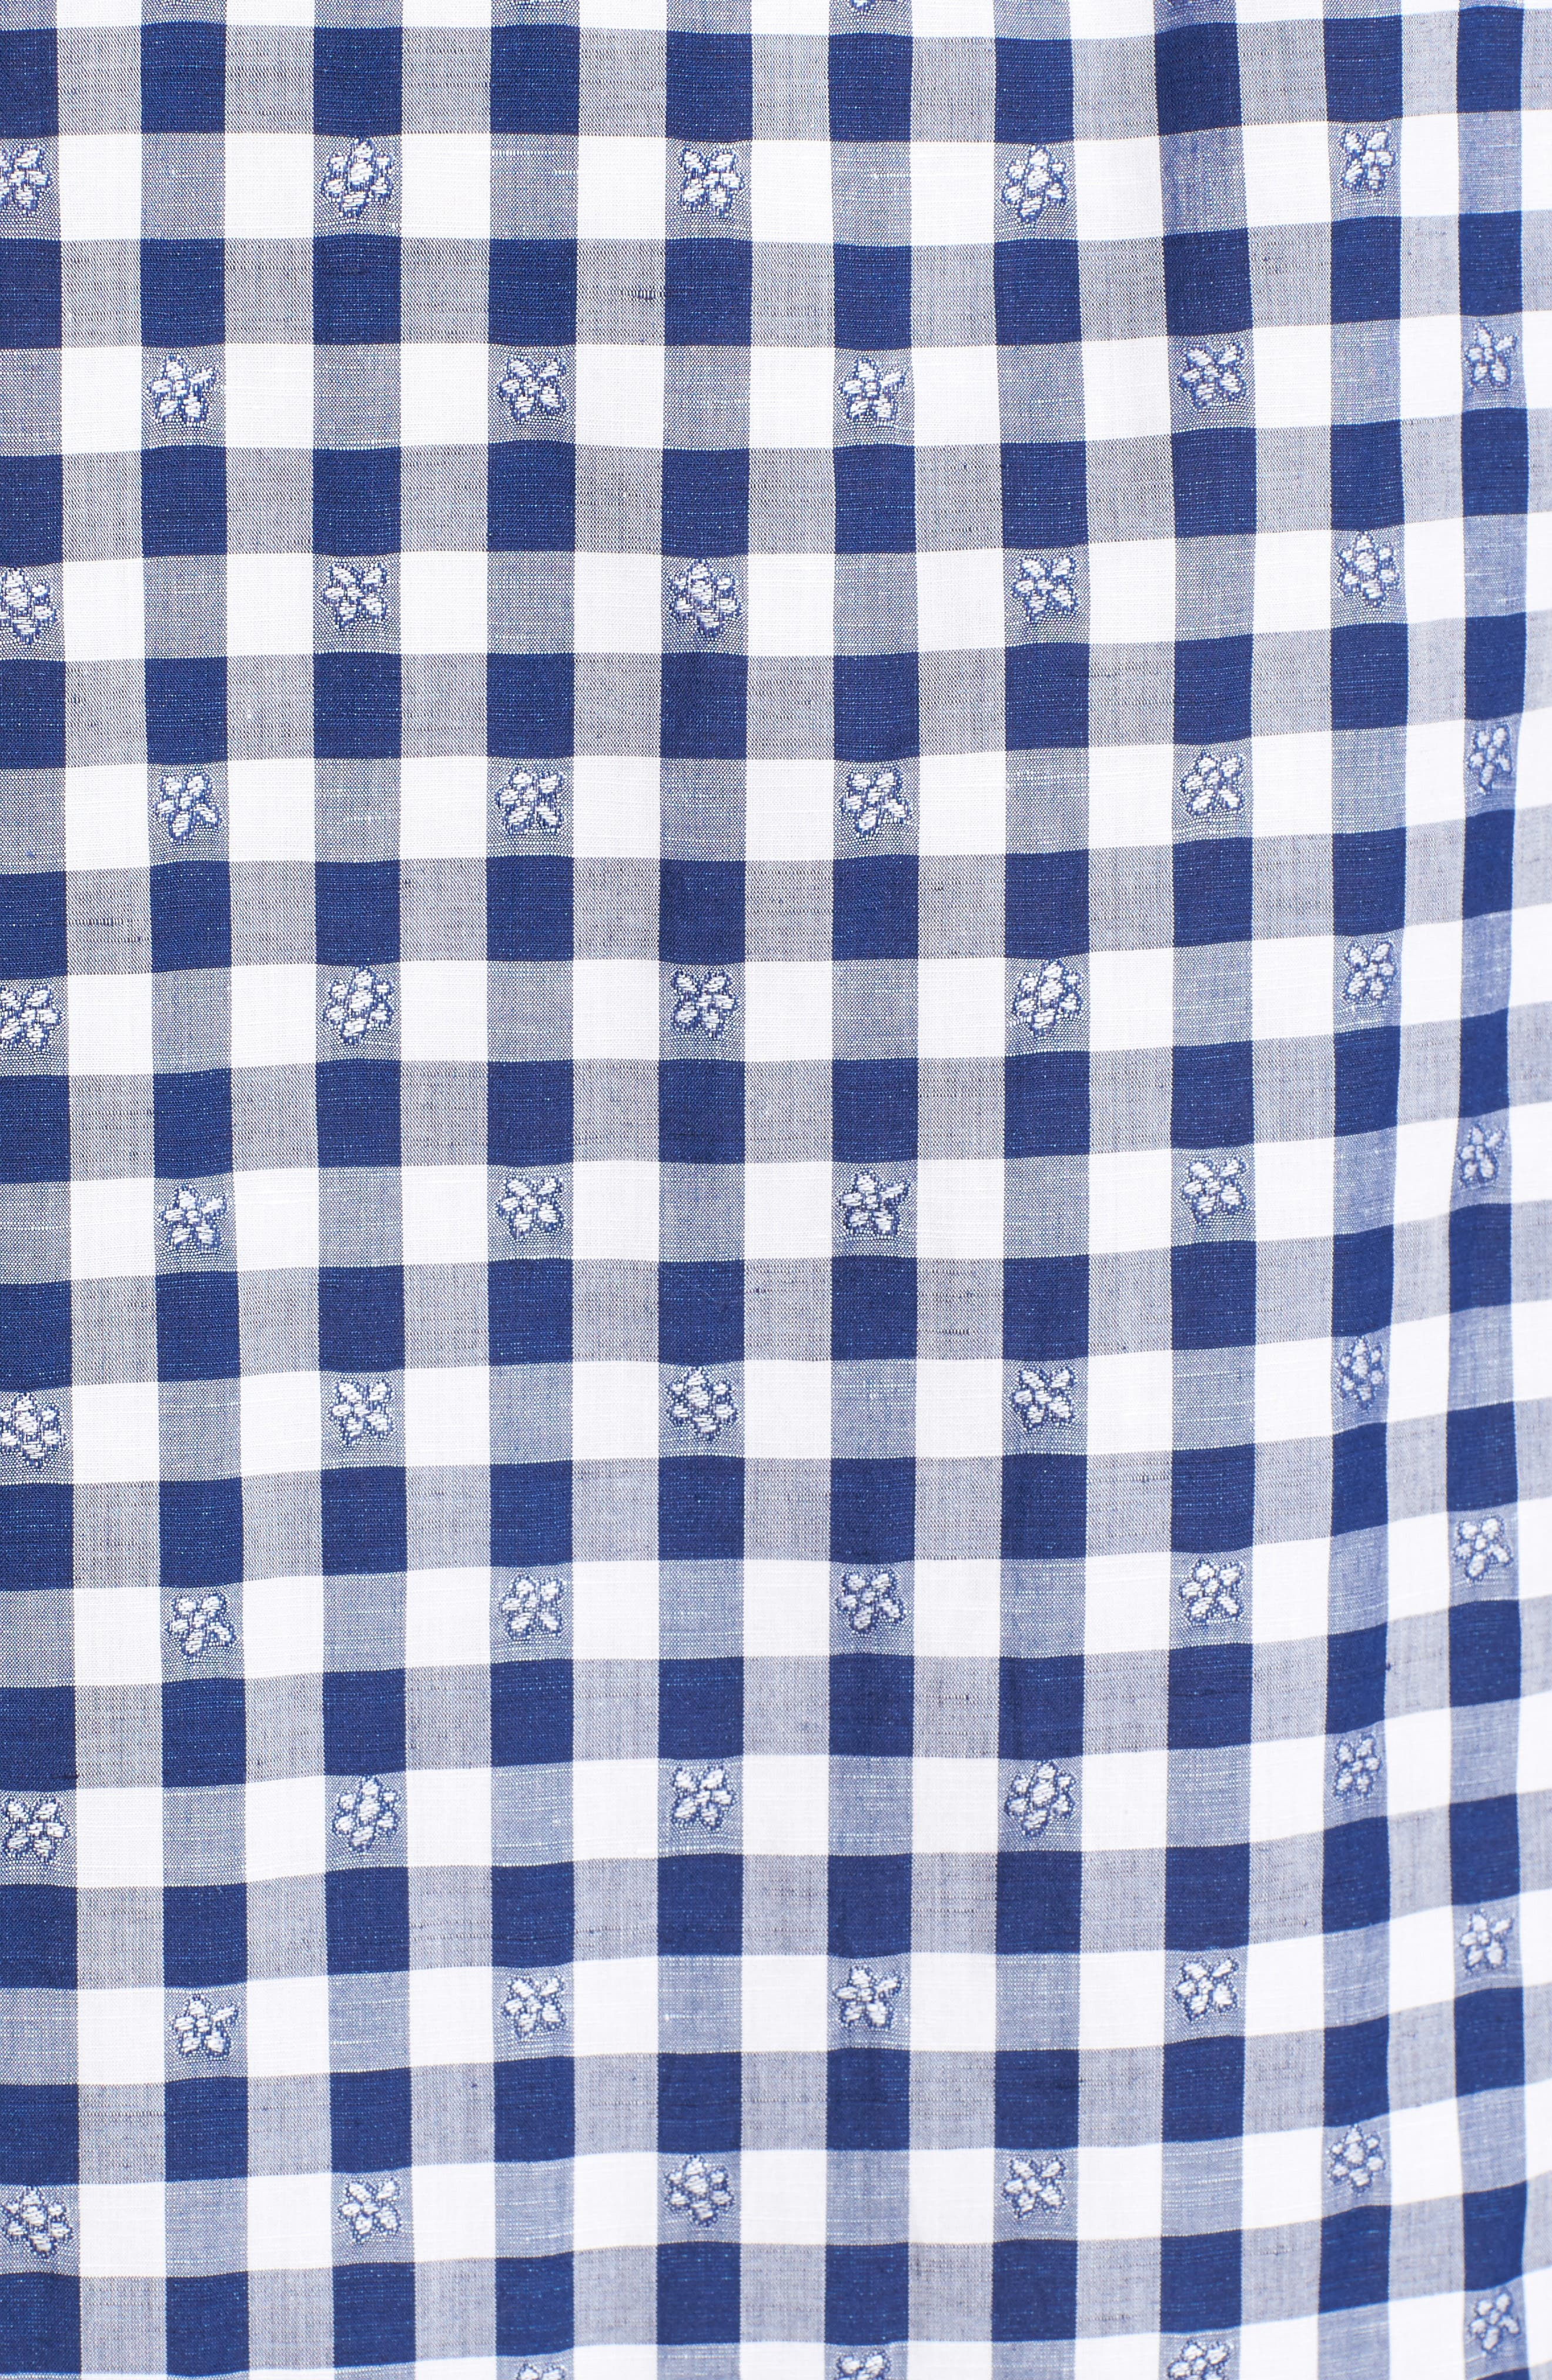 Wallace Floral Check Sport Shirt,                             Alternate thumbnail 5, color,                             423